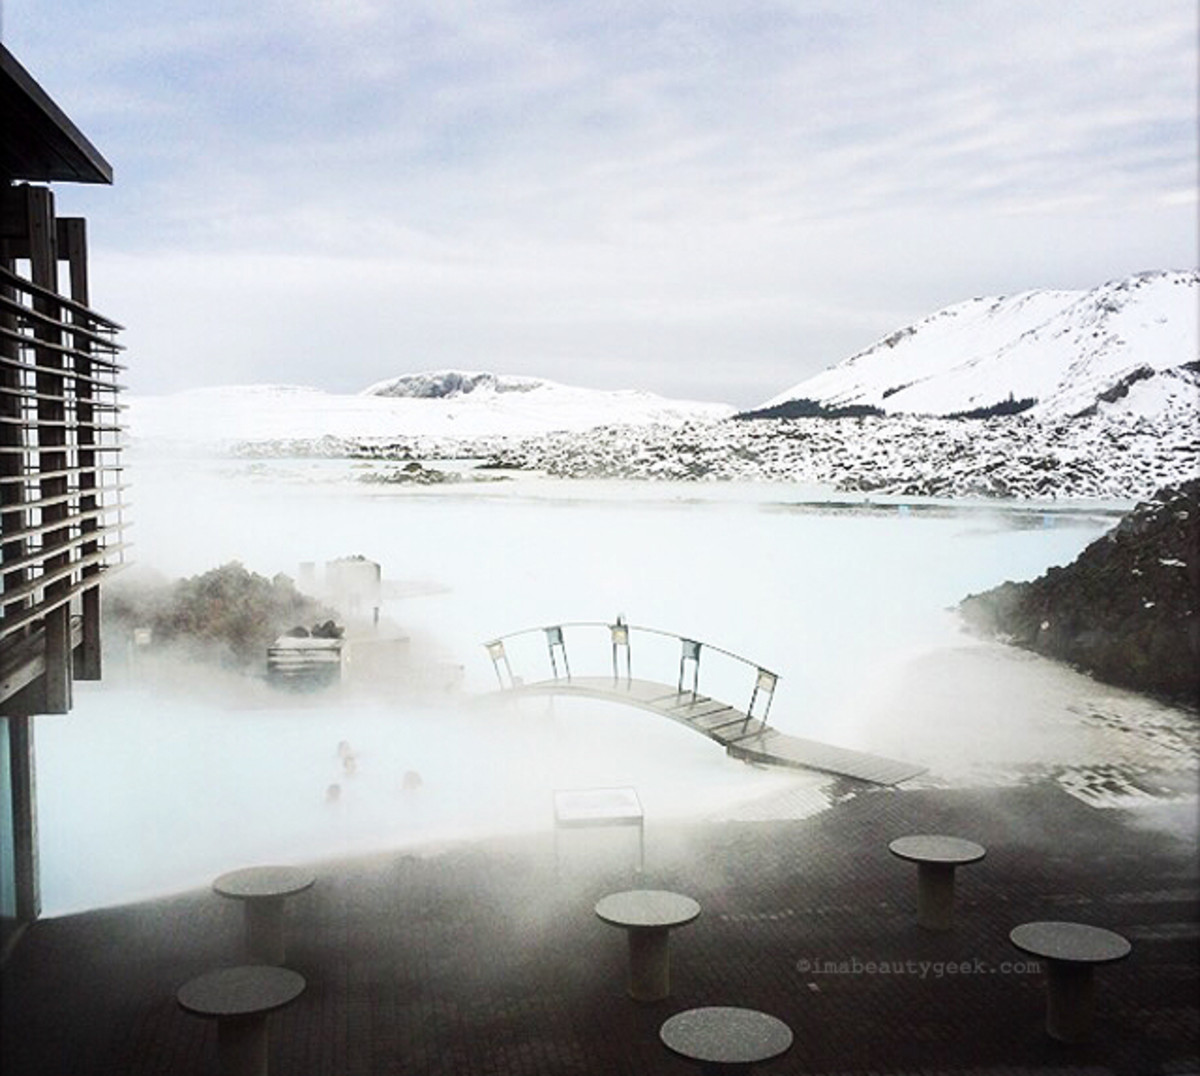 Iceland: Blue Lagoon, February 2015